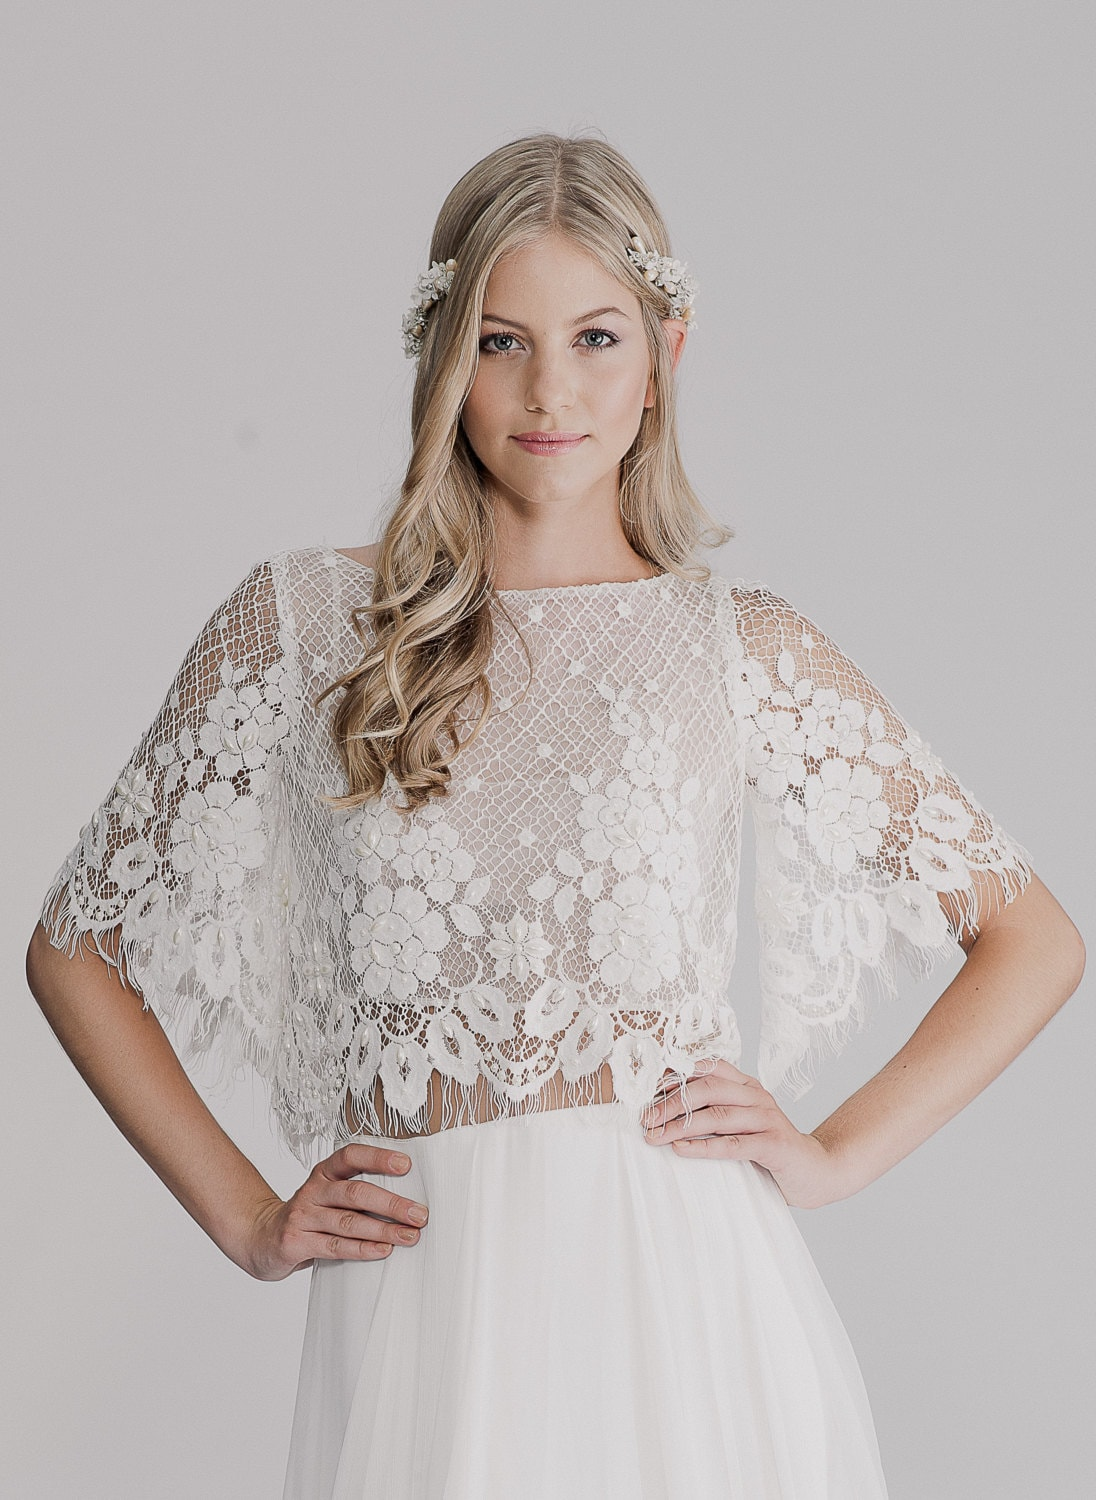 Lace crop top bridal overlay by Yoav Rish